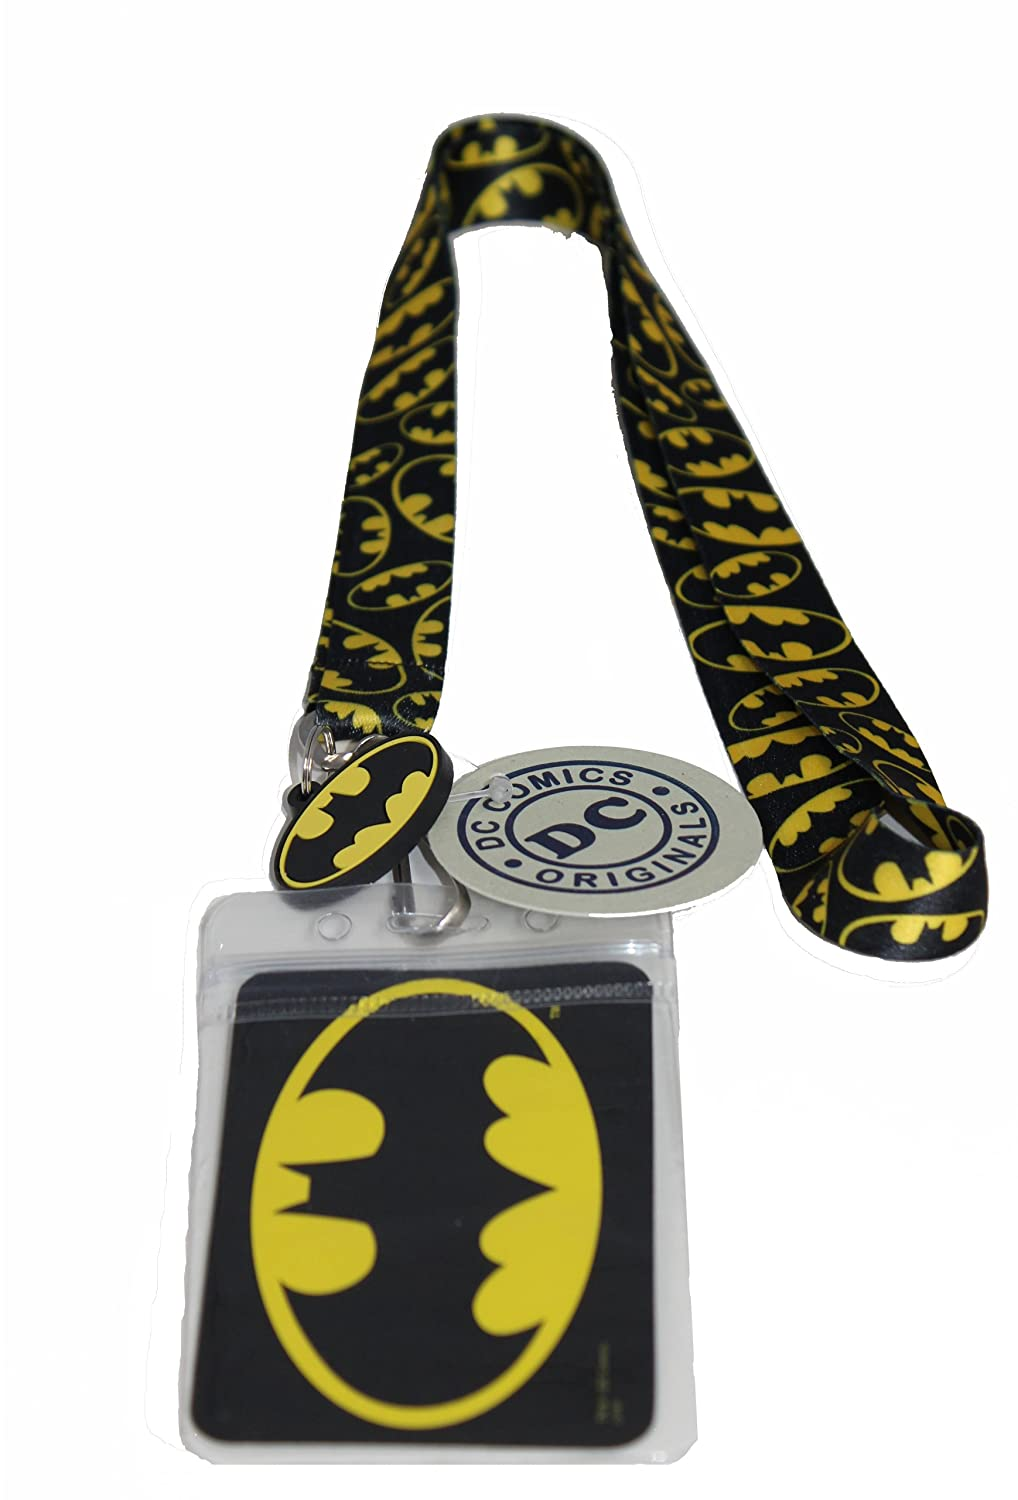 Lanyard with Charm DC Comics Originals Multibatman Lanyard Officially Licensed & Trademarked Products LAN-DC-0007